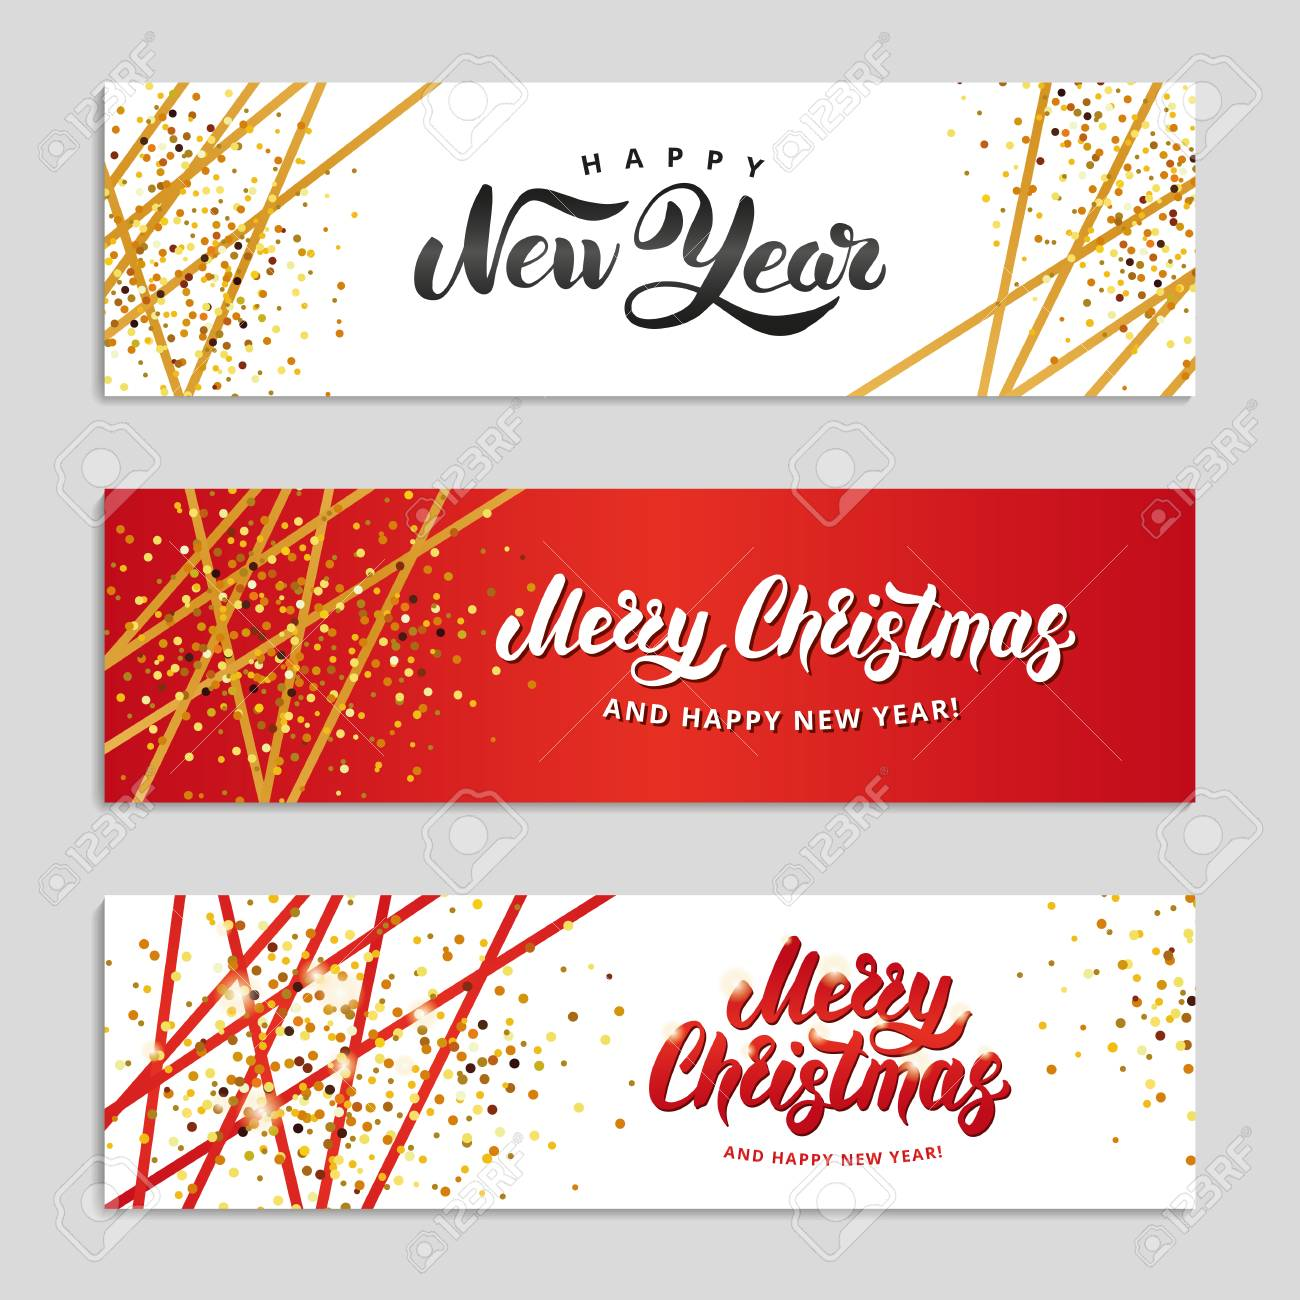 Gold Sparkles Happy New Year Background Gold And Red Banners